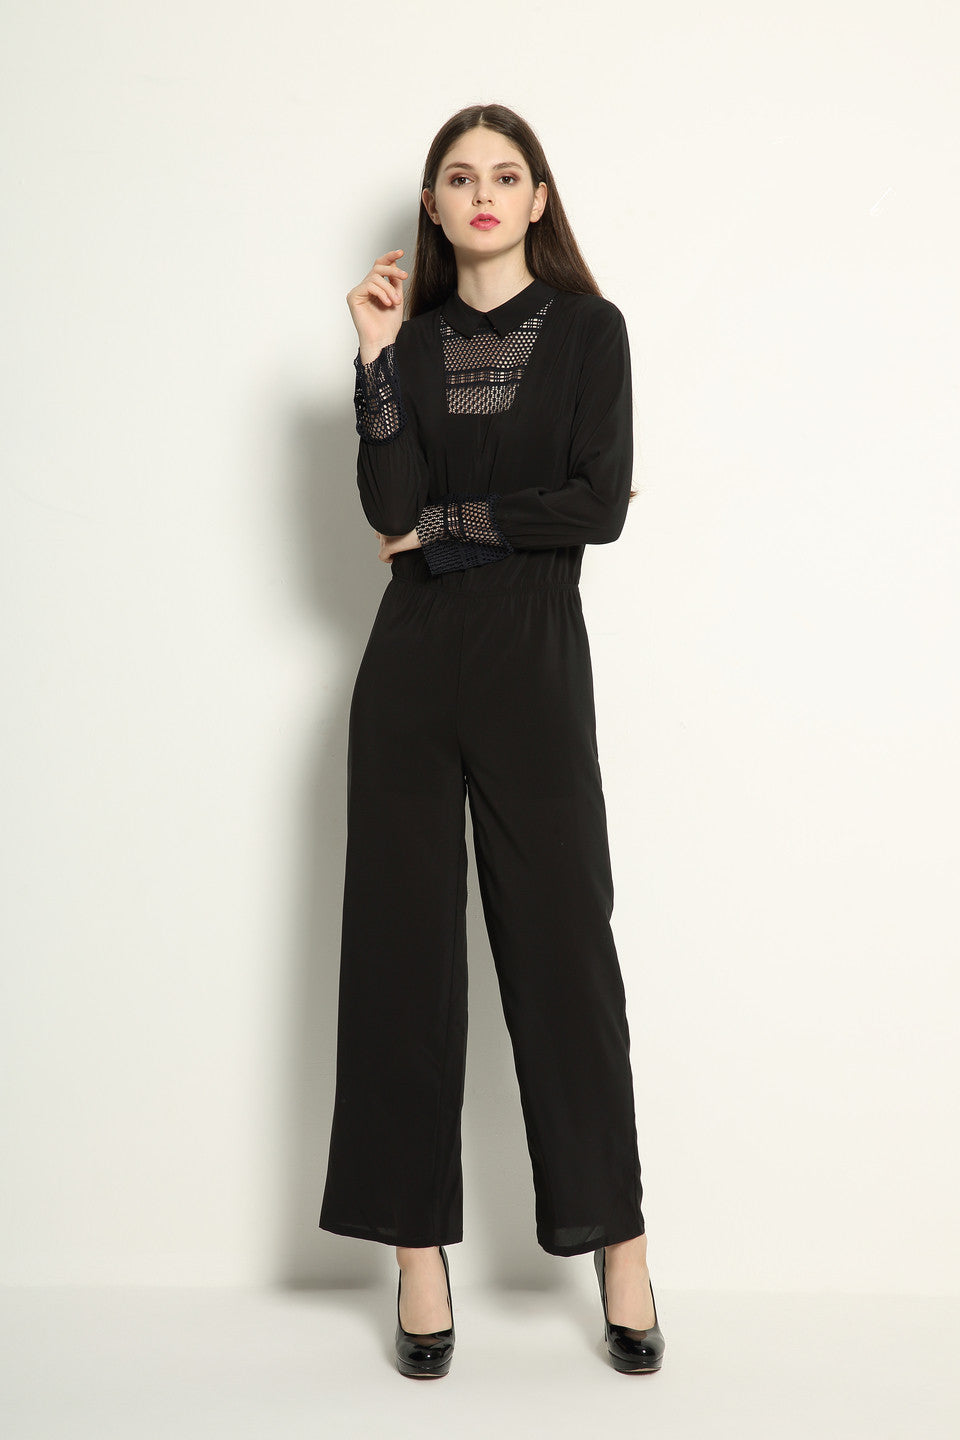 Japanese Lace Detail Jumpsuit - GlanceZ   - 2